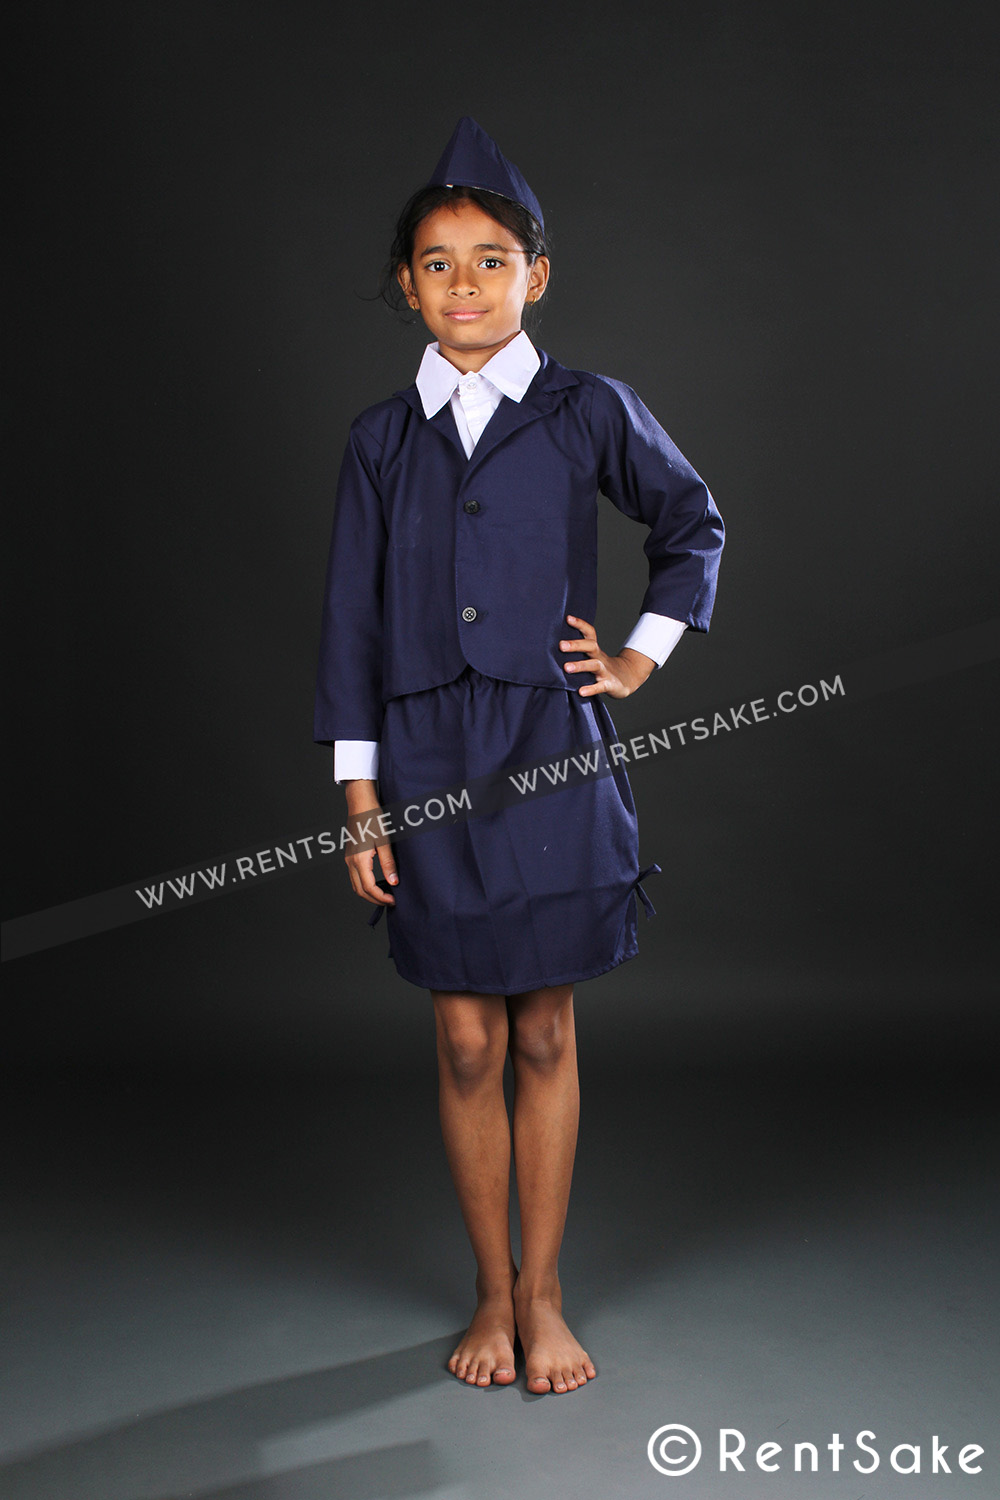 kid's costume | product categories |